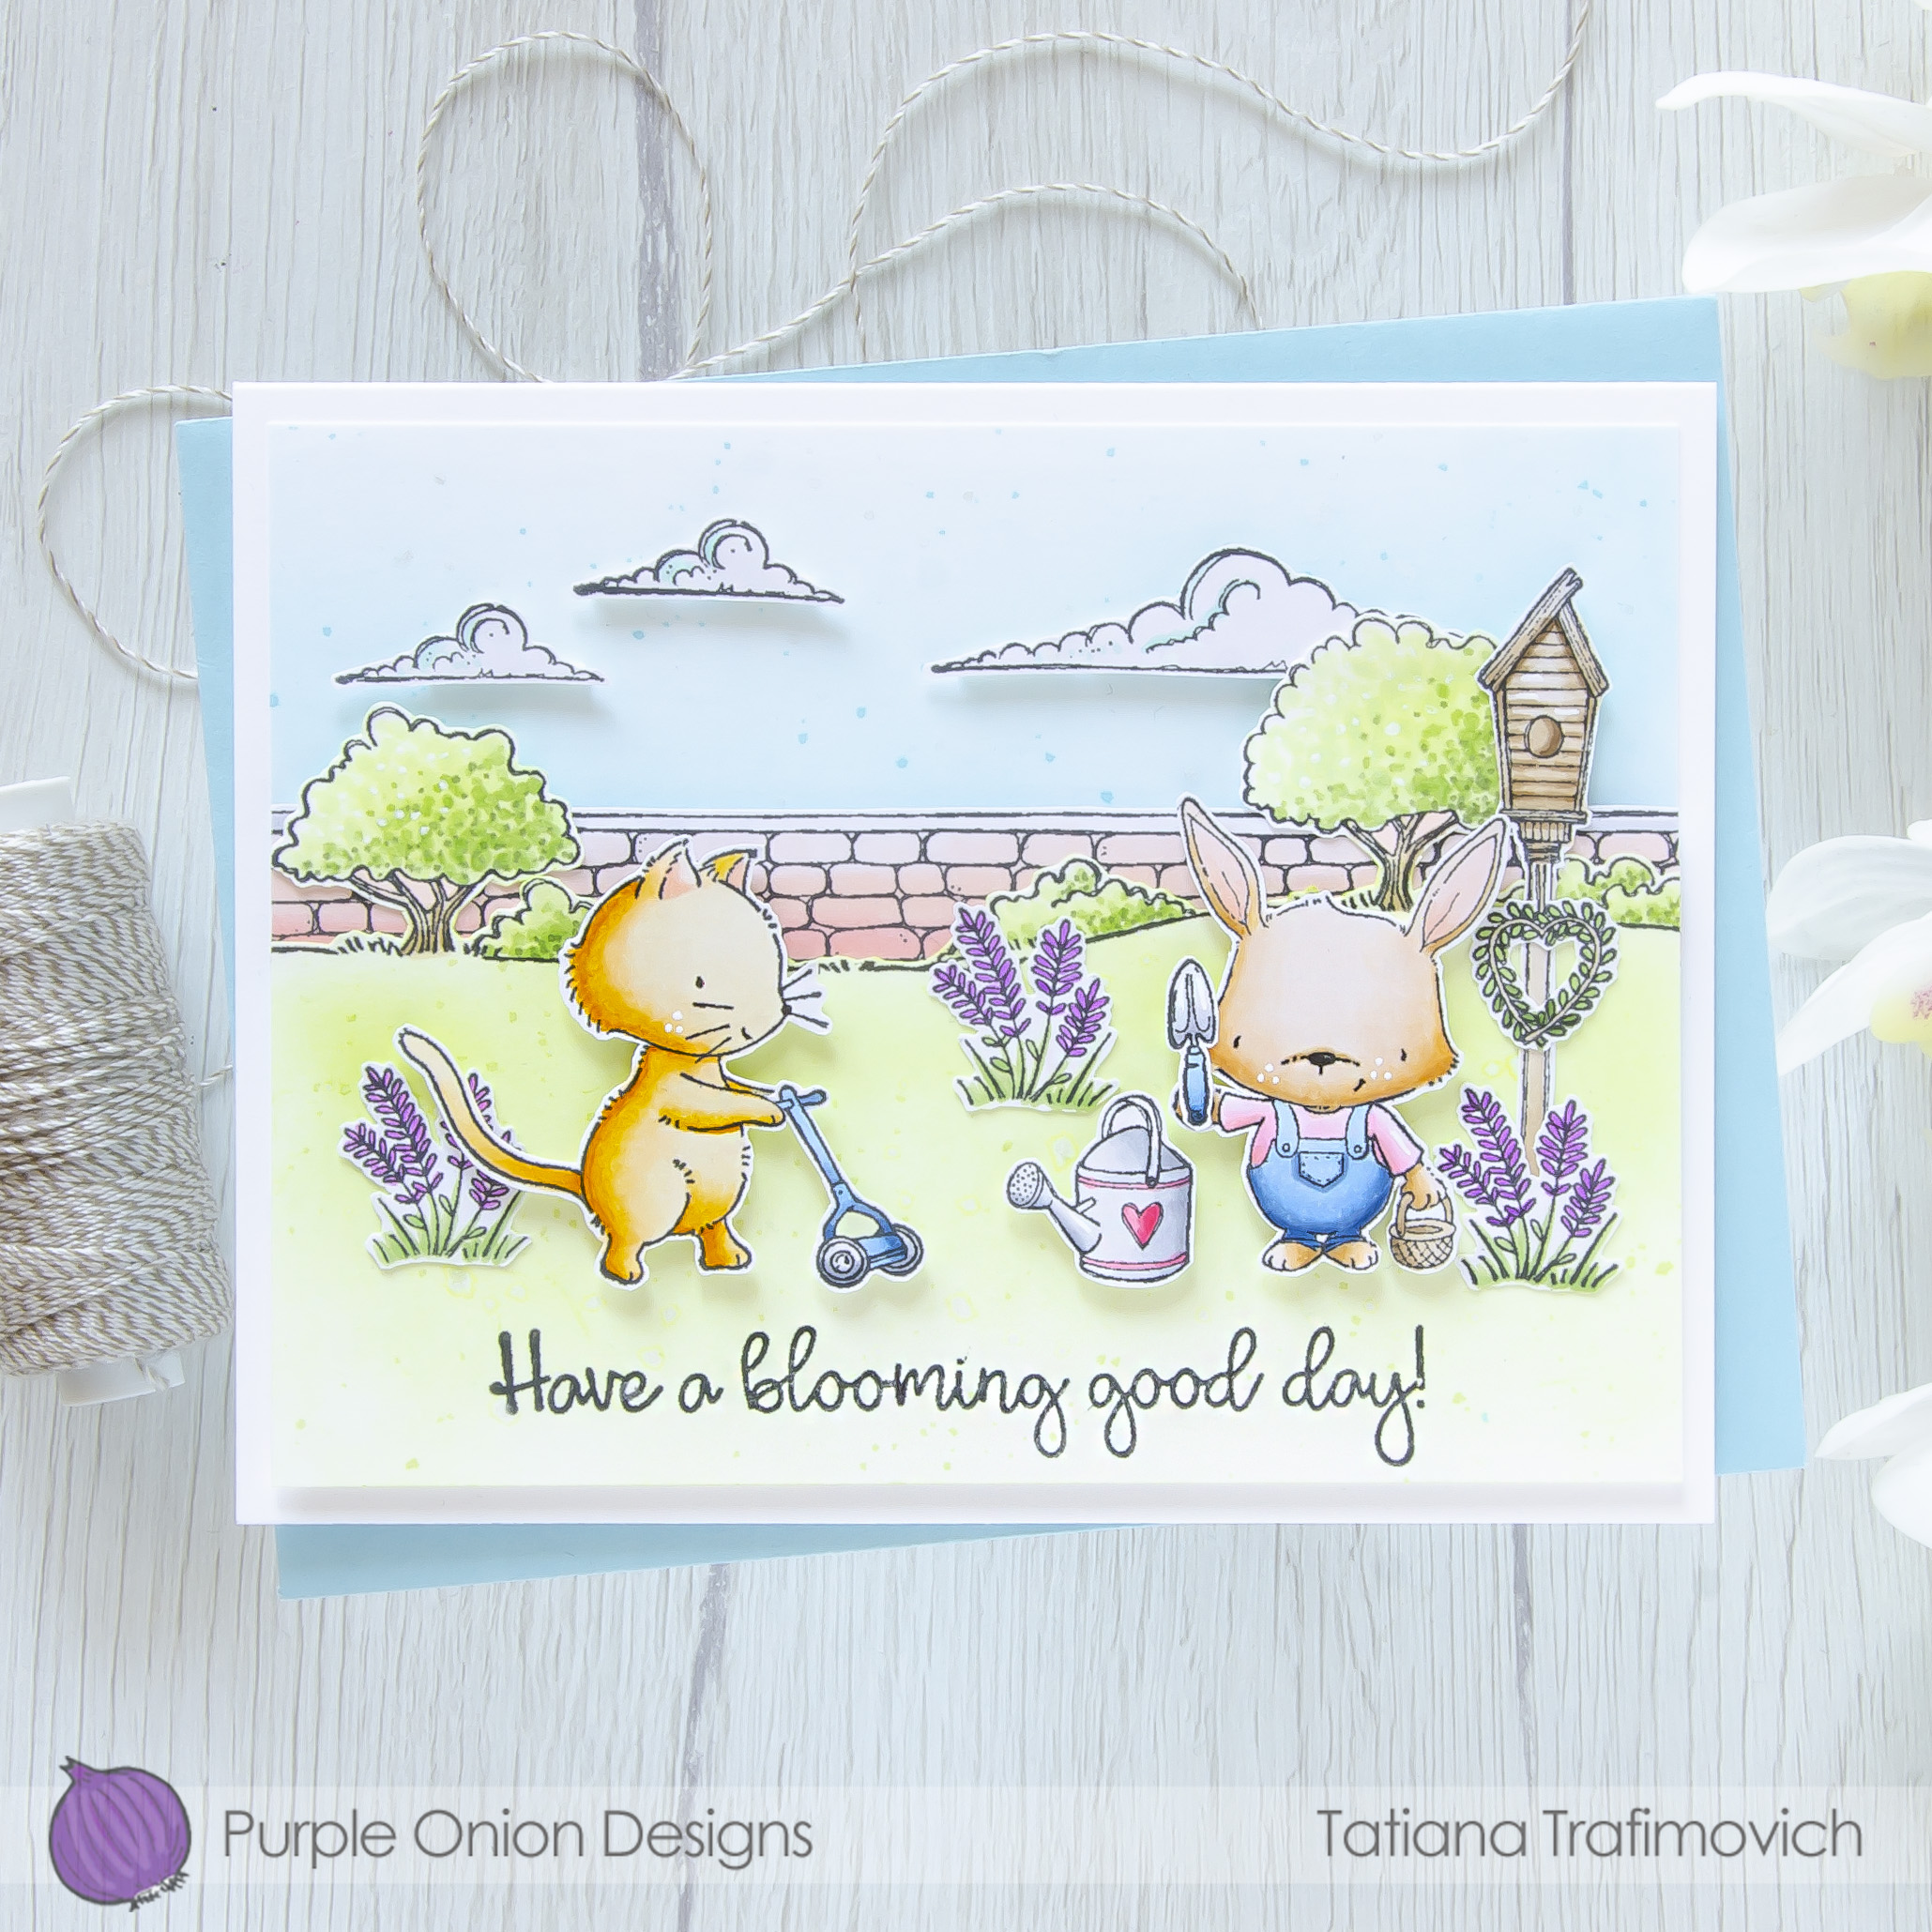 Have A Blooming Good Day! #handmade card by Tatiana Trafimovich #tatianacraftandart - stamps by Purple Onion Designs